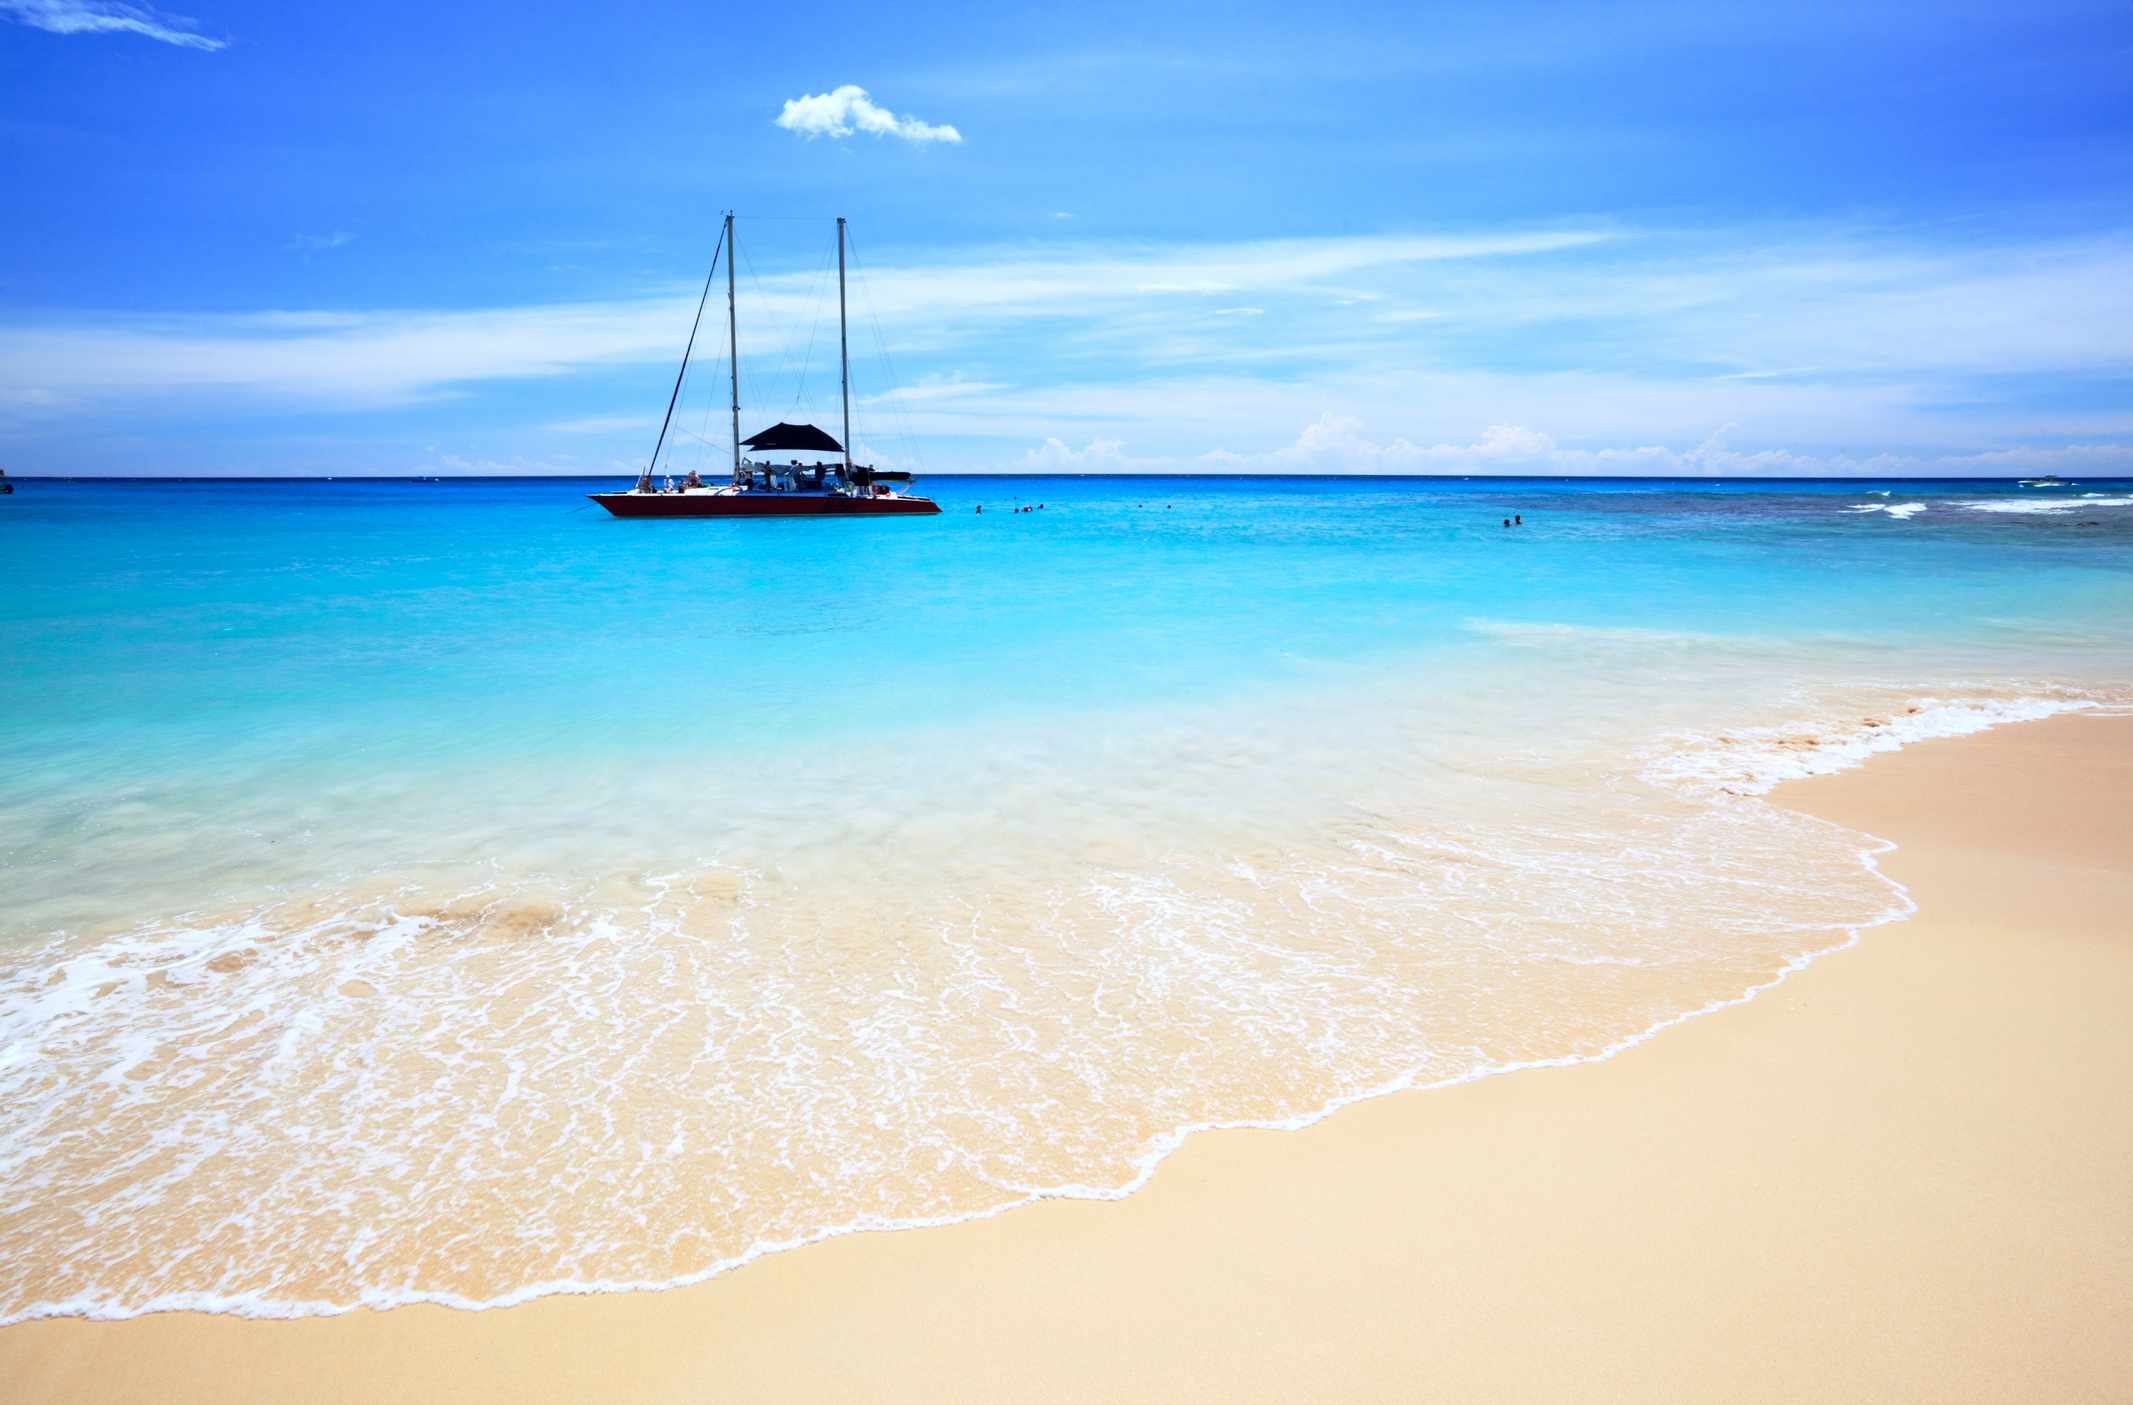 Boat on bright blue waters at Paynes Bay Beach